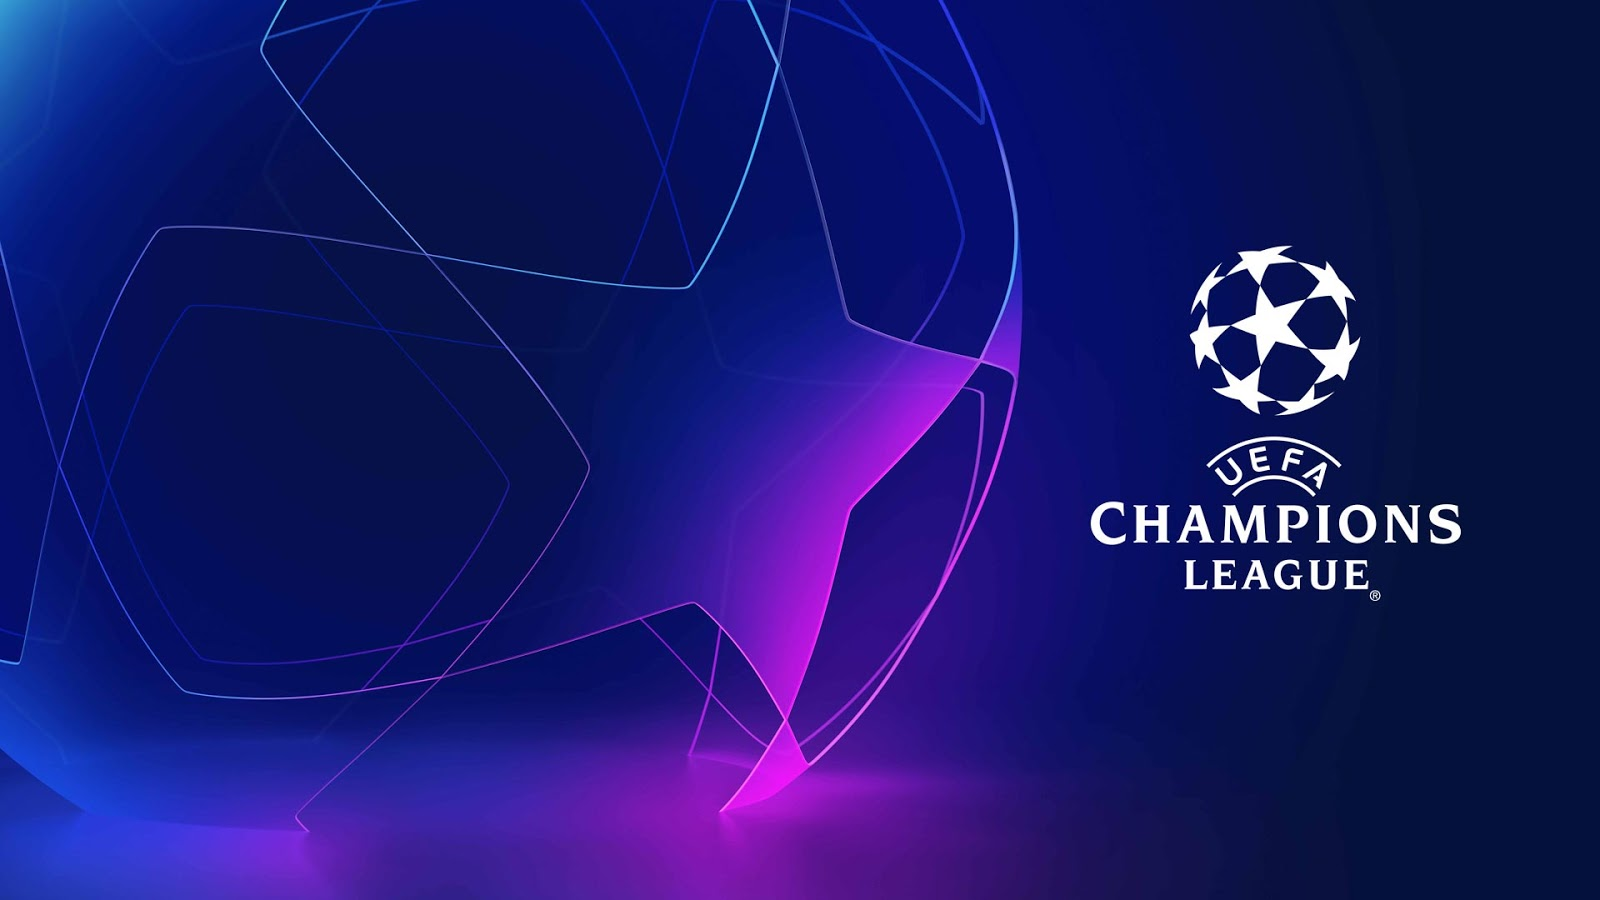 UEFA Champions League: New UEFA Champions League 2018-2021 Branding Revealed